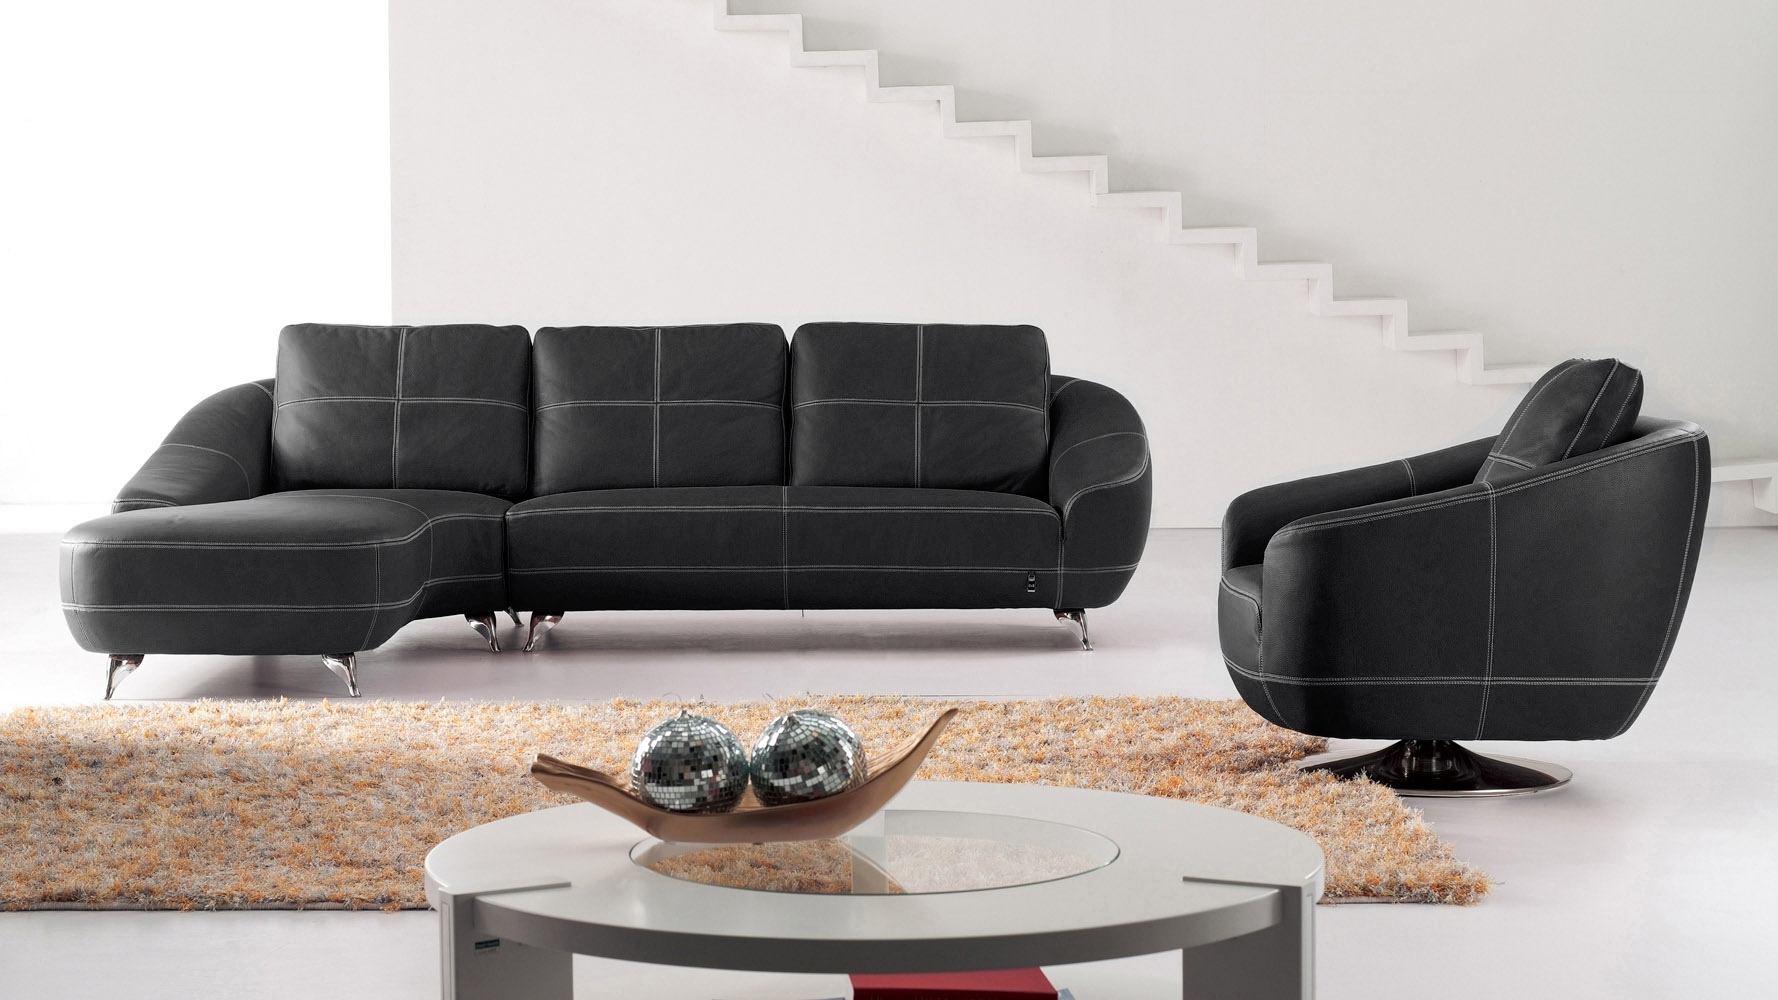 Home Lucy 2 Seater Leather Effect Sofa Bed Black - Sofa Designs intended for Lucy Grey 2 Piece Sectionals With Raf Chaise (Image 12 of 30)